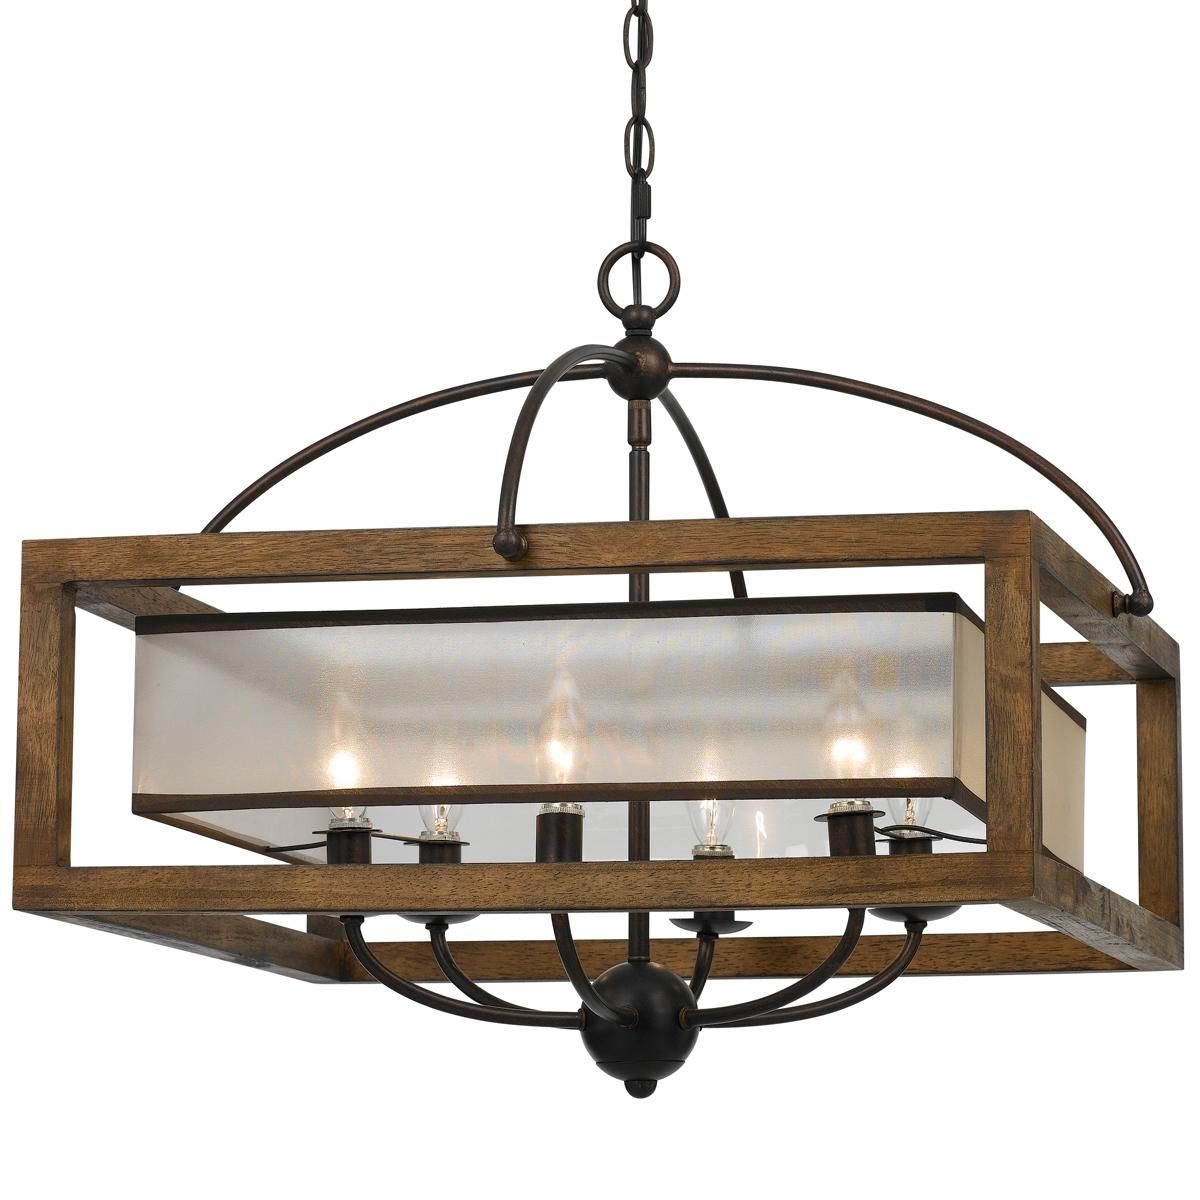 Square Wood Frame and Sheer Chandelier - 6 Light | Rustic style ...